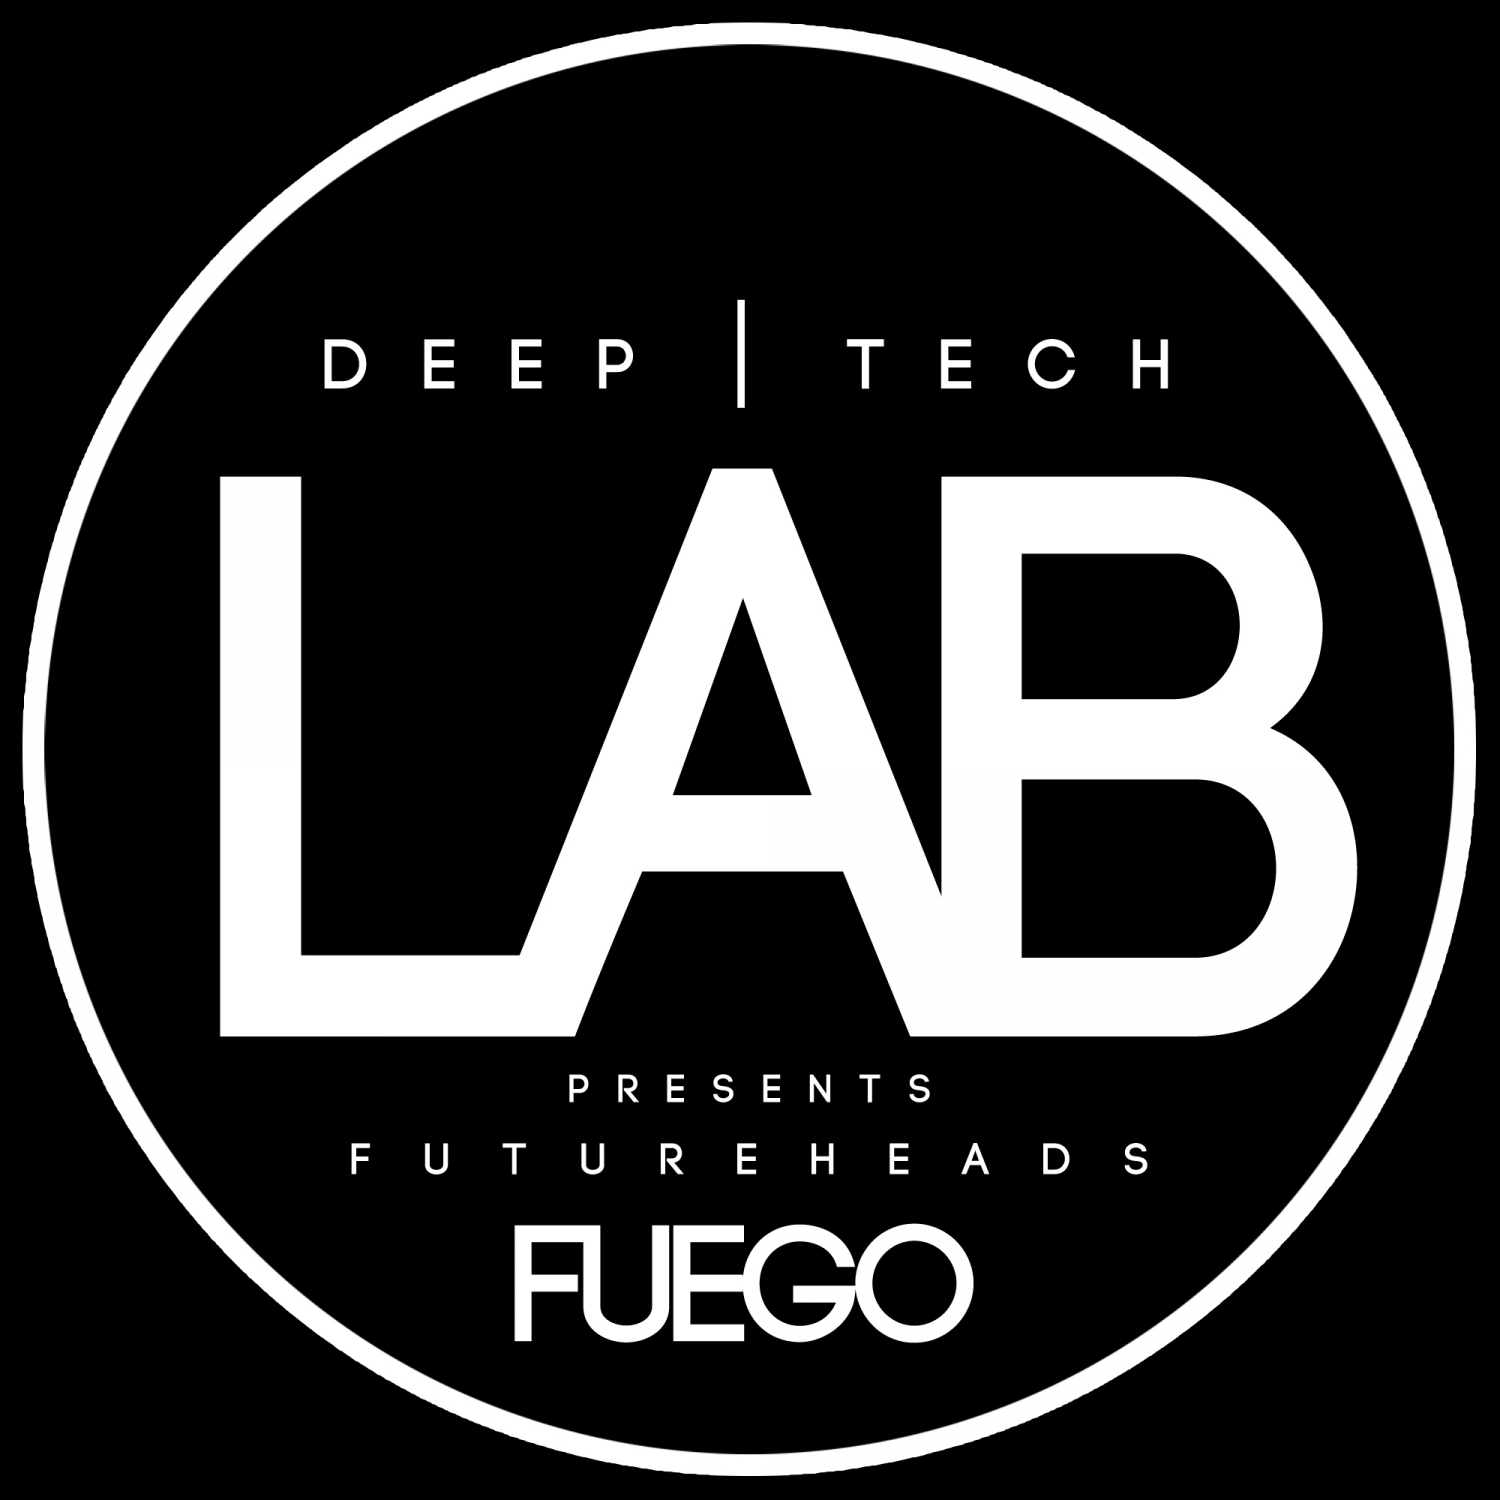 Futureheads - Fuego   (Original Mix)